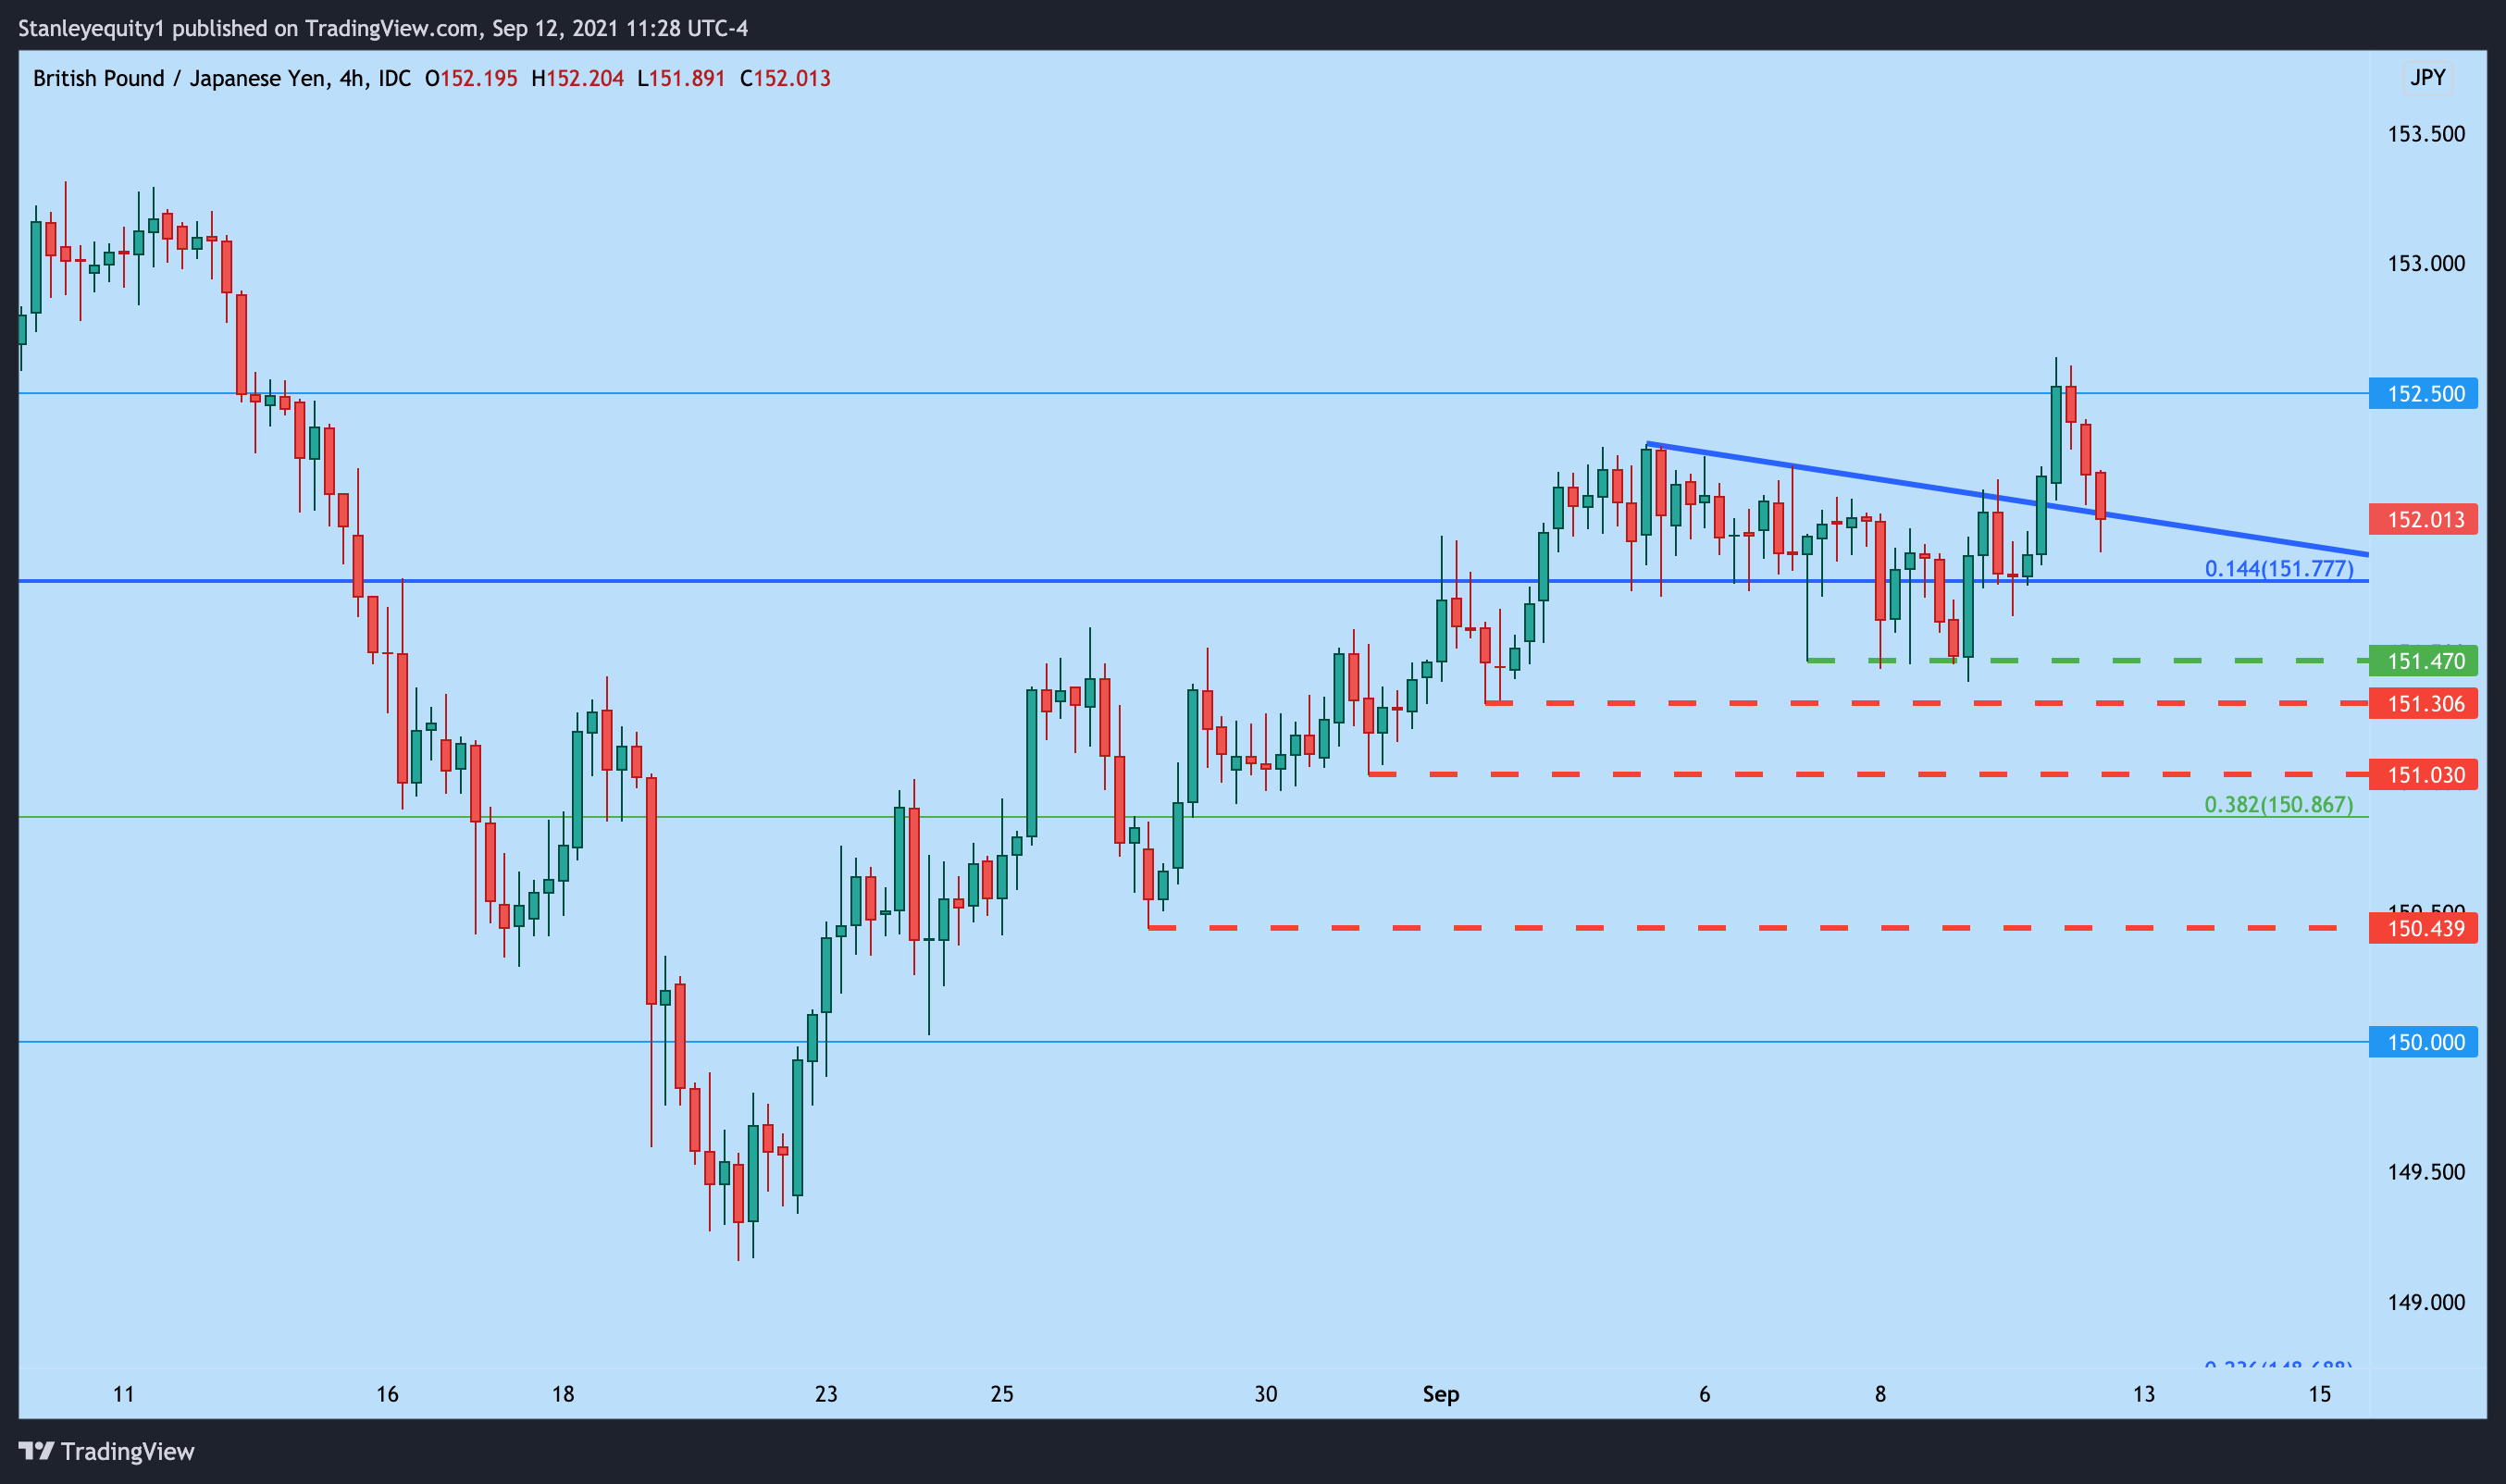 GBP/JPY Four Hour Price Chart